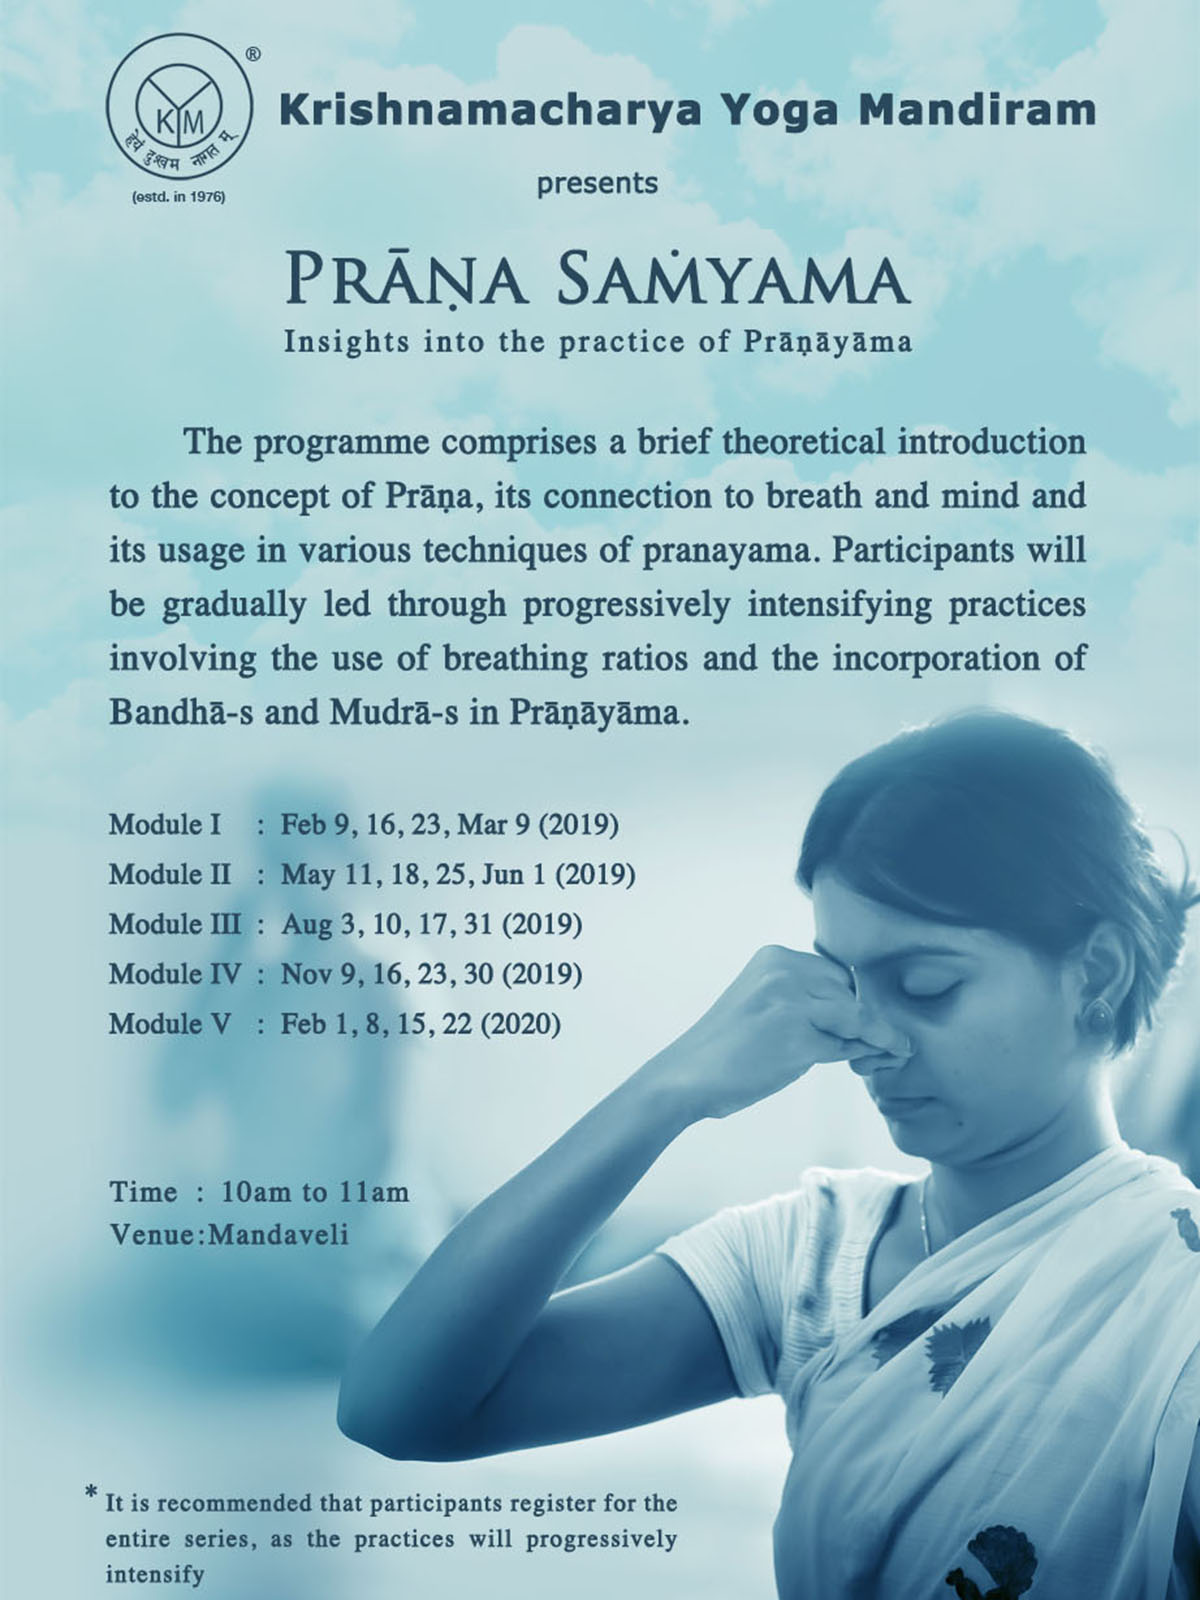 Prāṇa Saṁyama | Insights into the practice of Prāṇāyāma